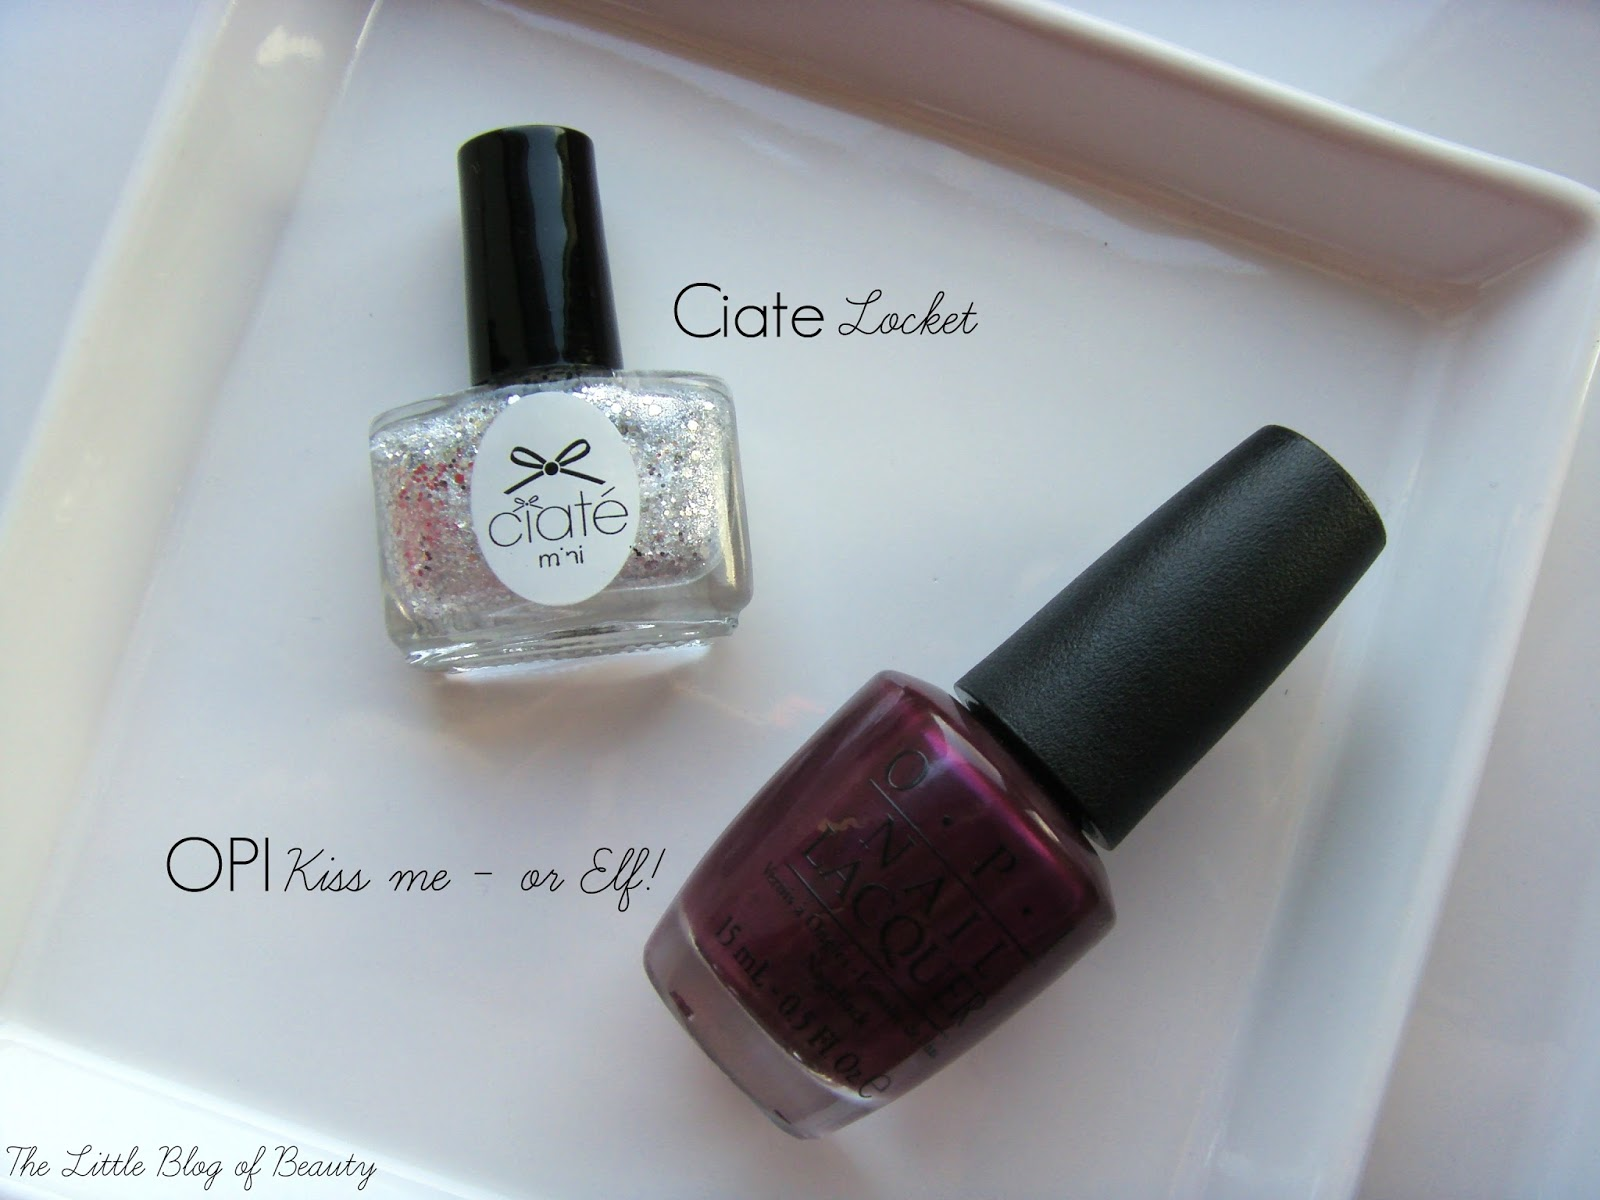 OPI Kiss me - or Elf! and Ciate Locket